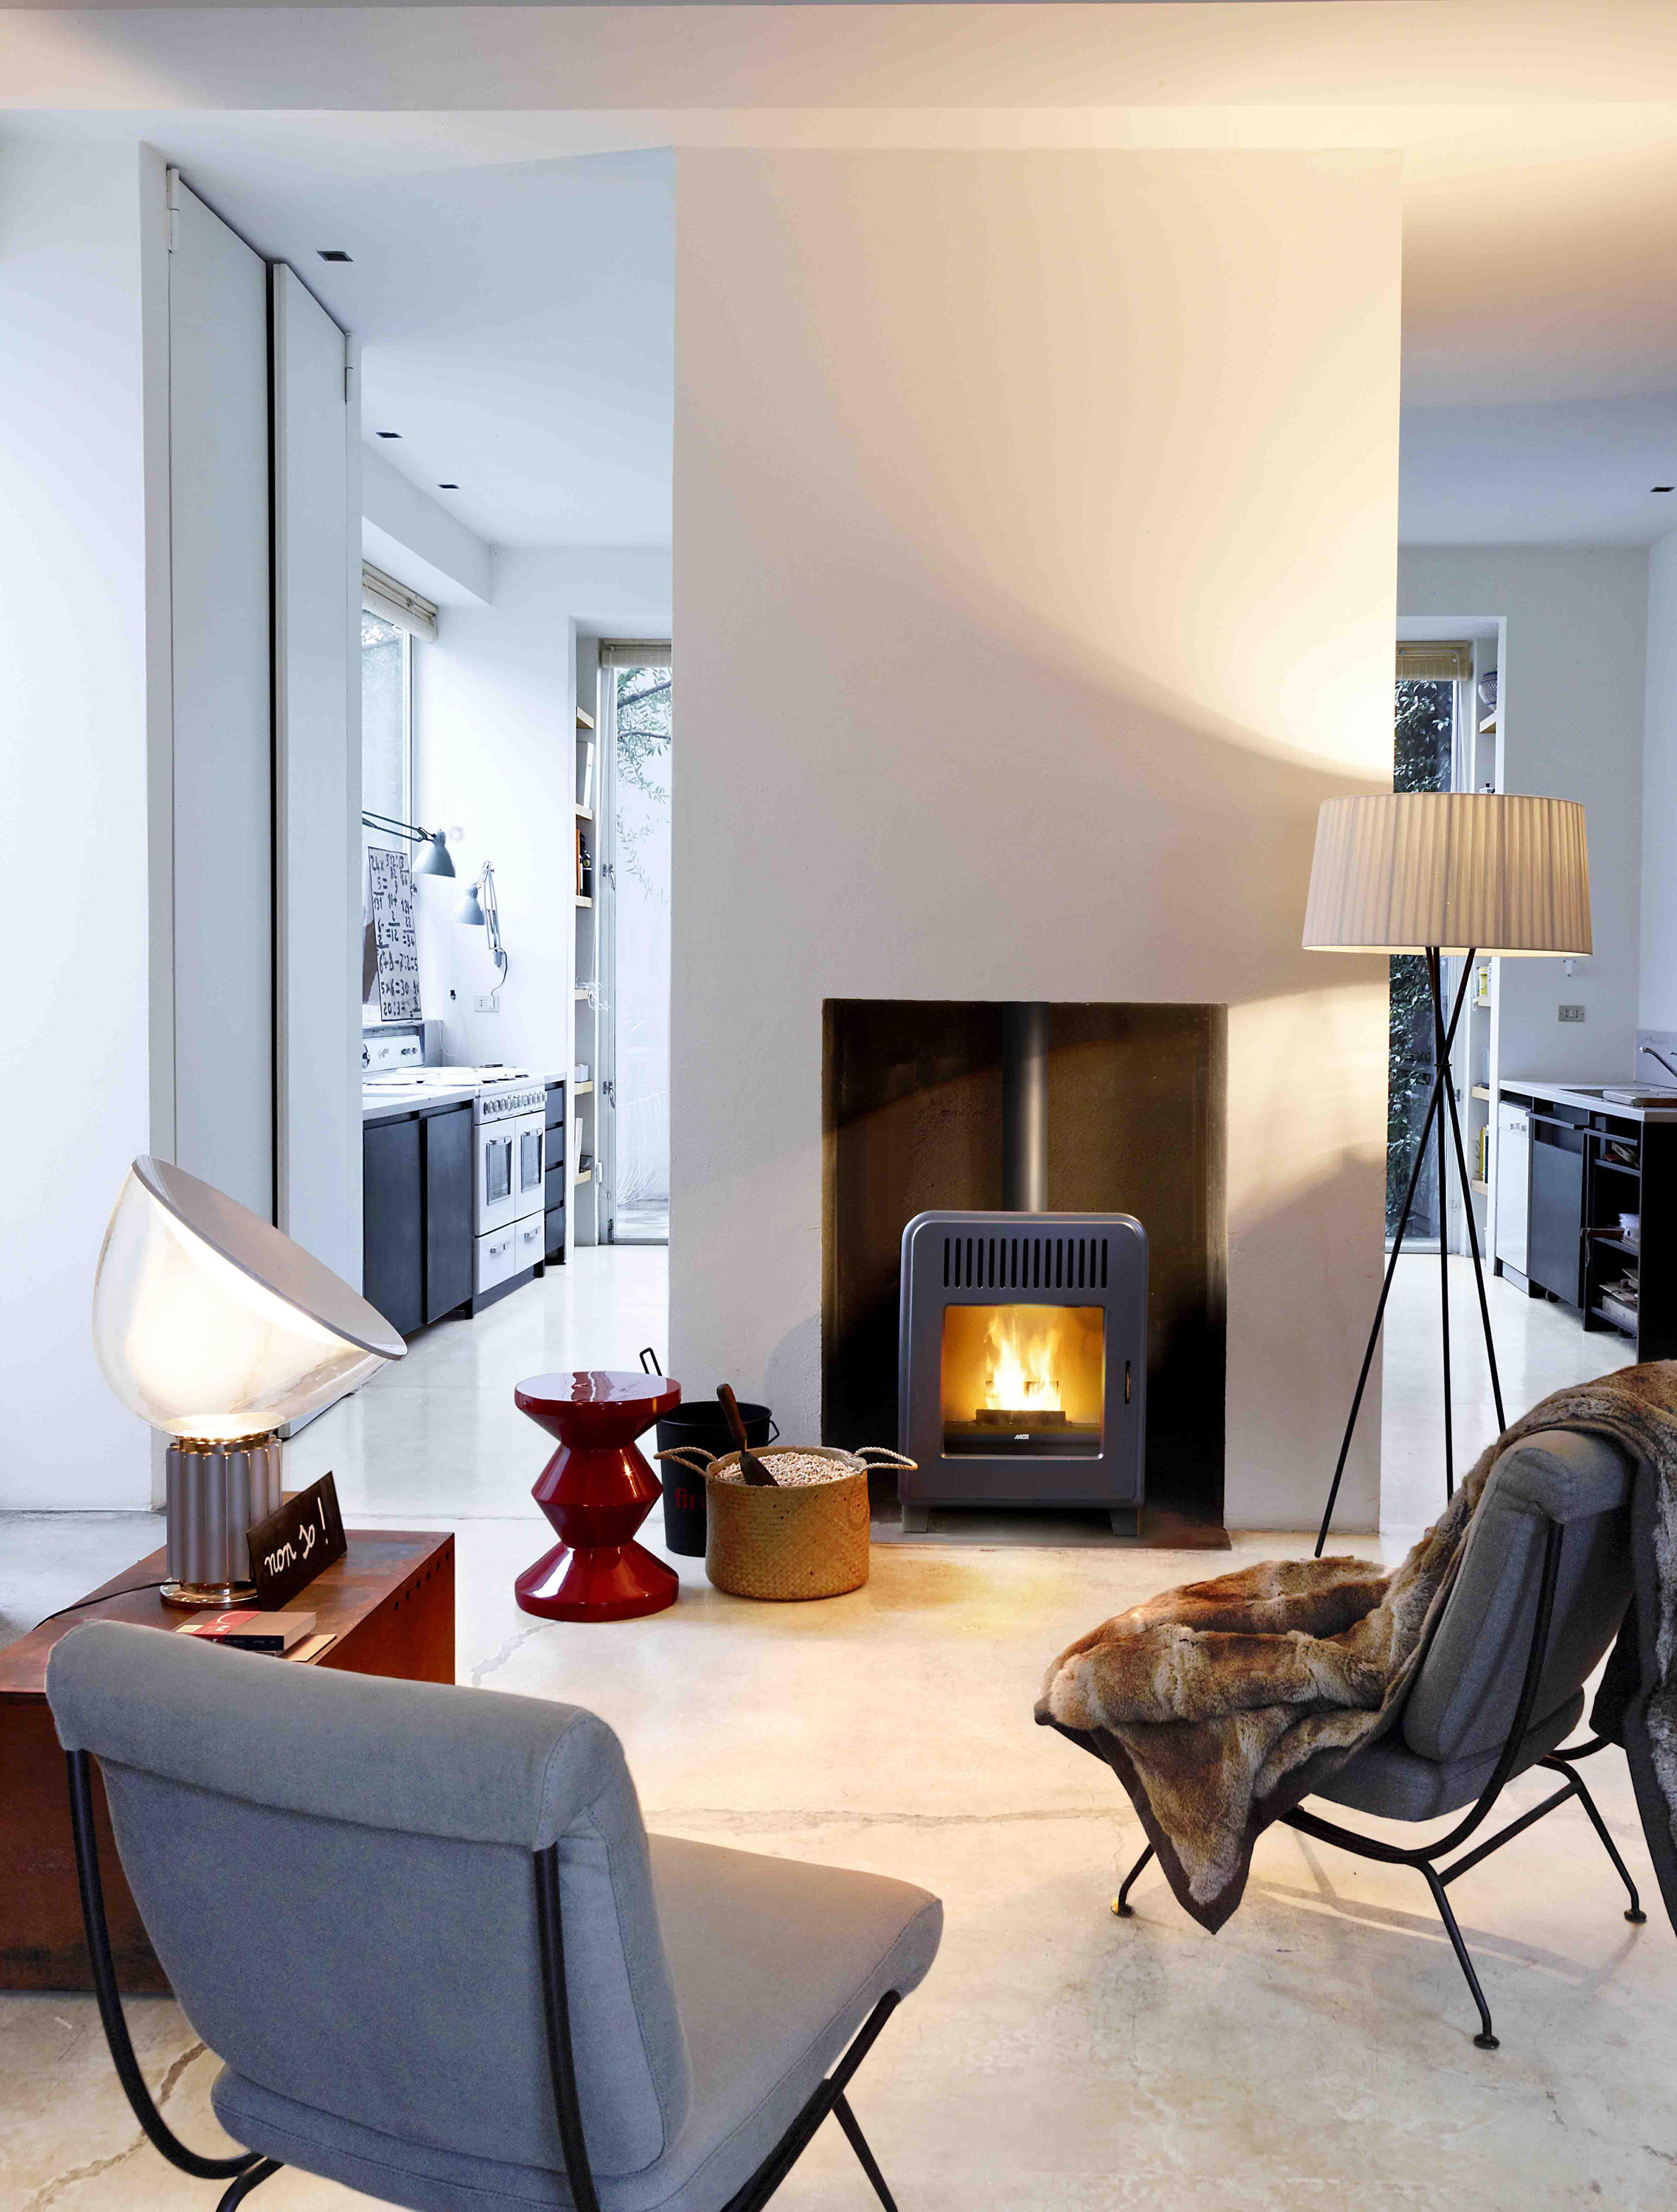 Mcz Cute Cute Pellet Stoves From Mcz Architonic